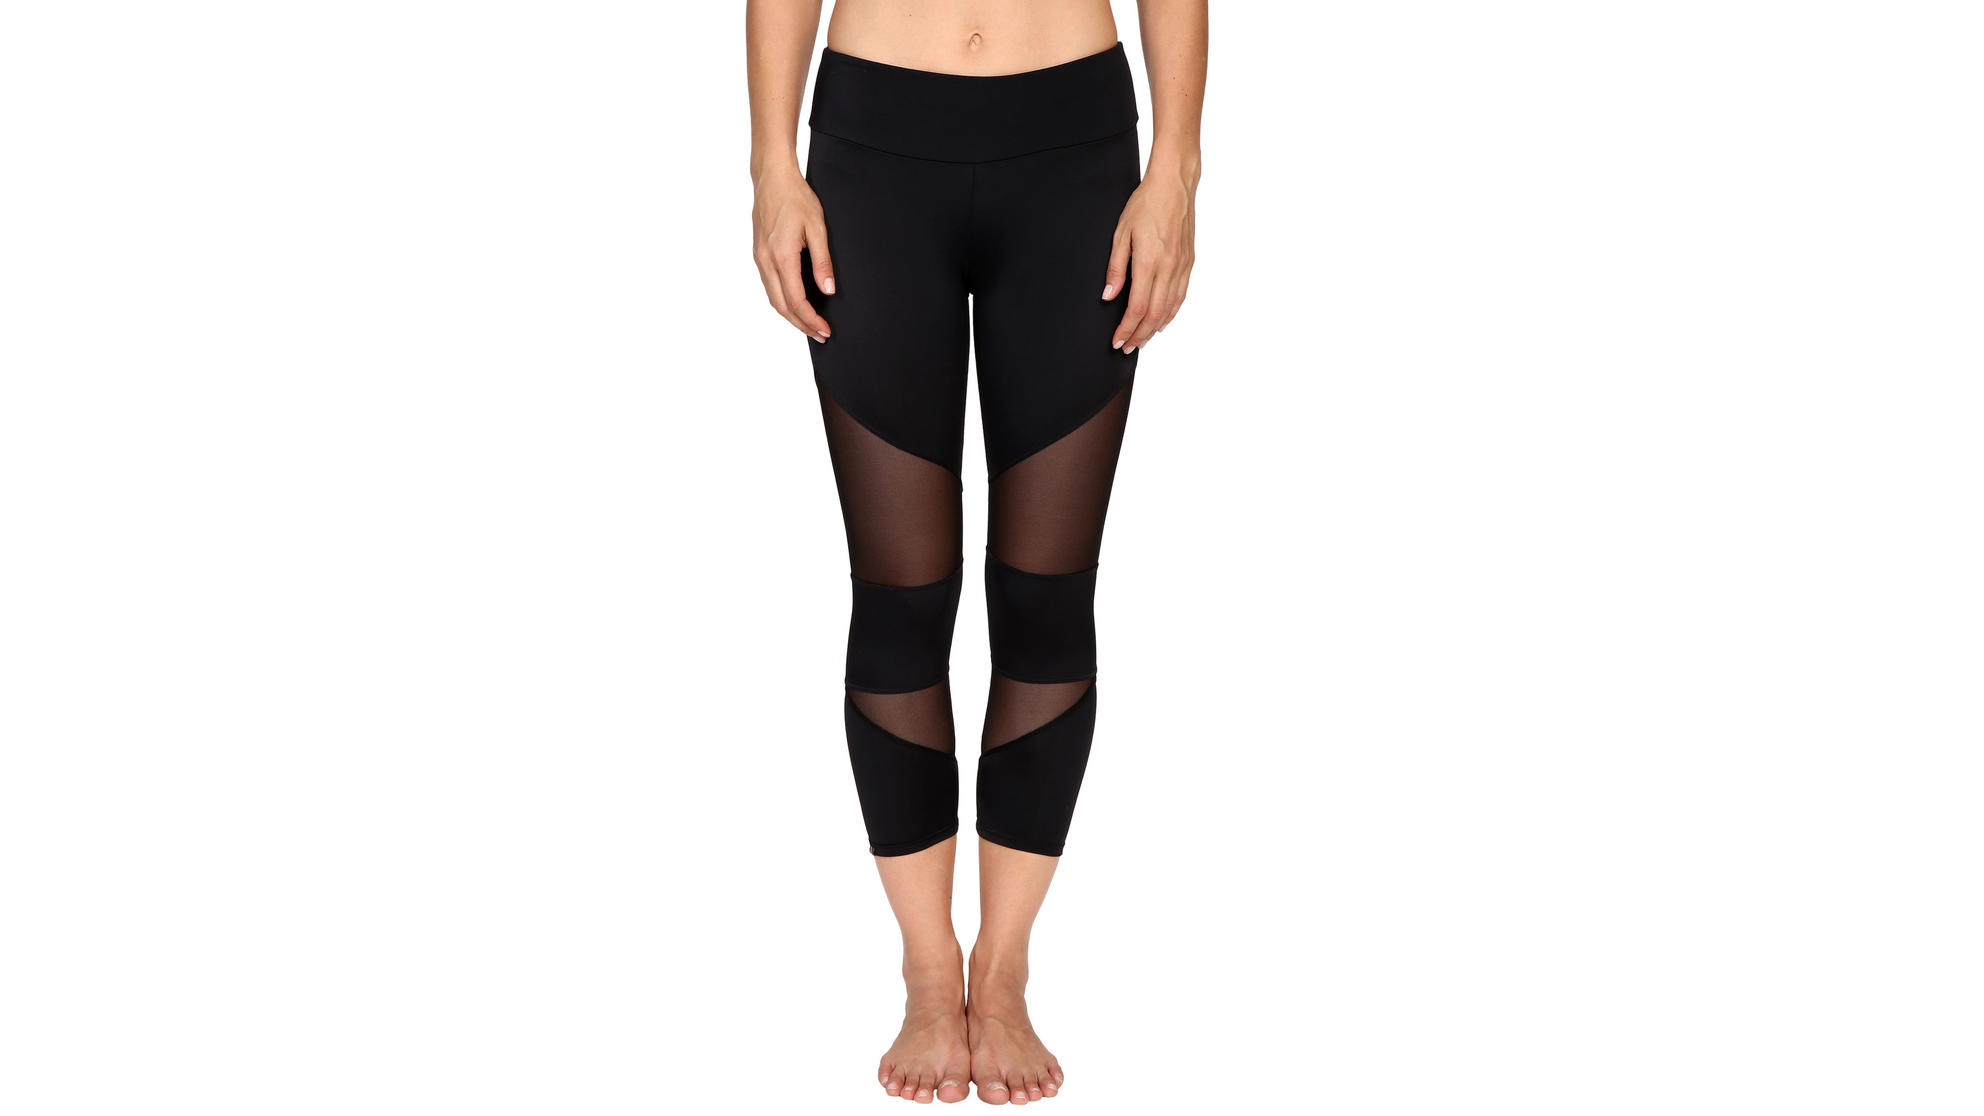 8 Mesh-Paneled Workout Leggings We're Obsessed With Right Now